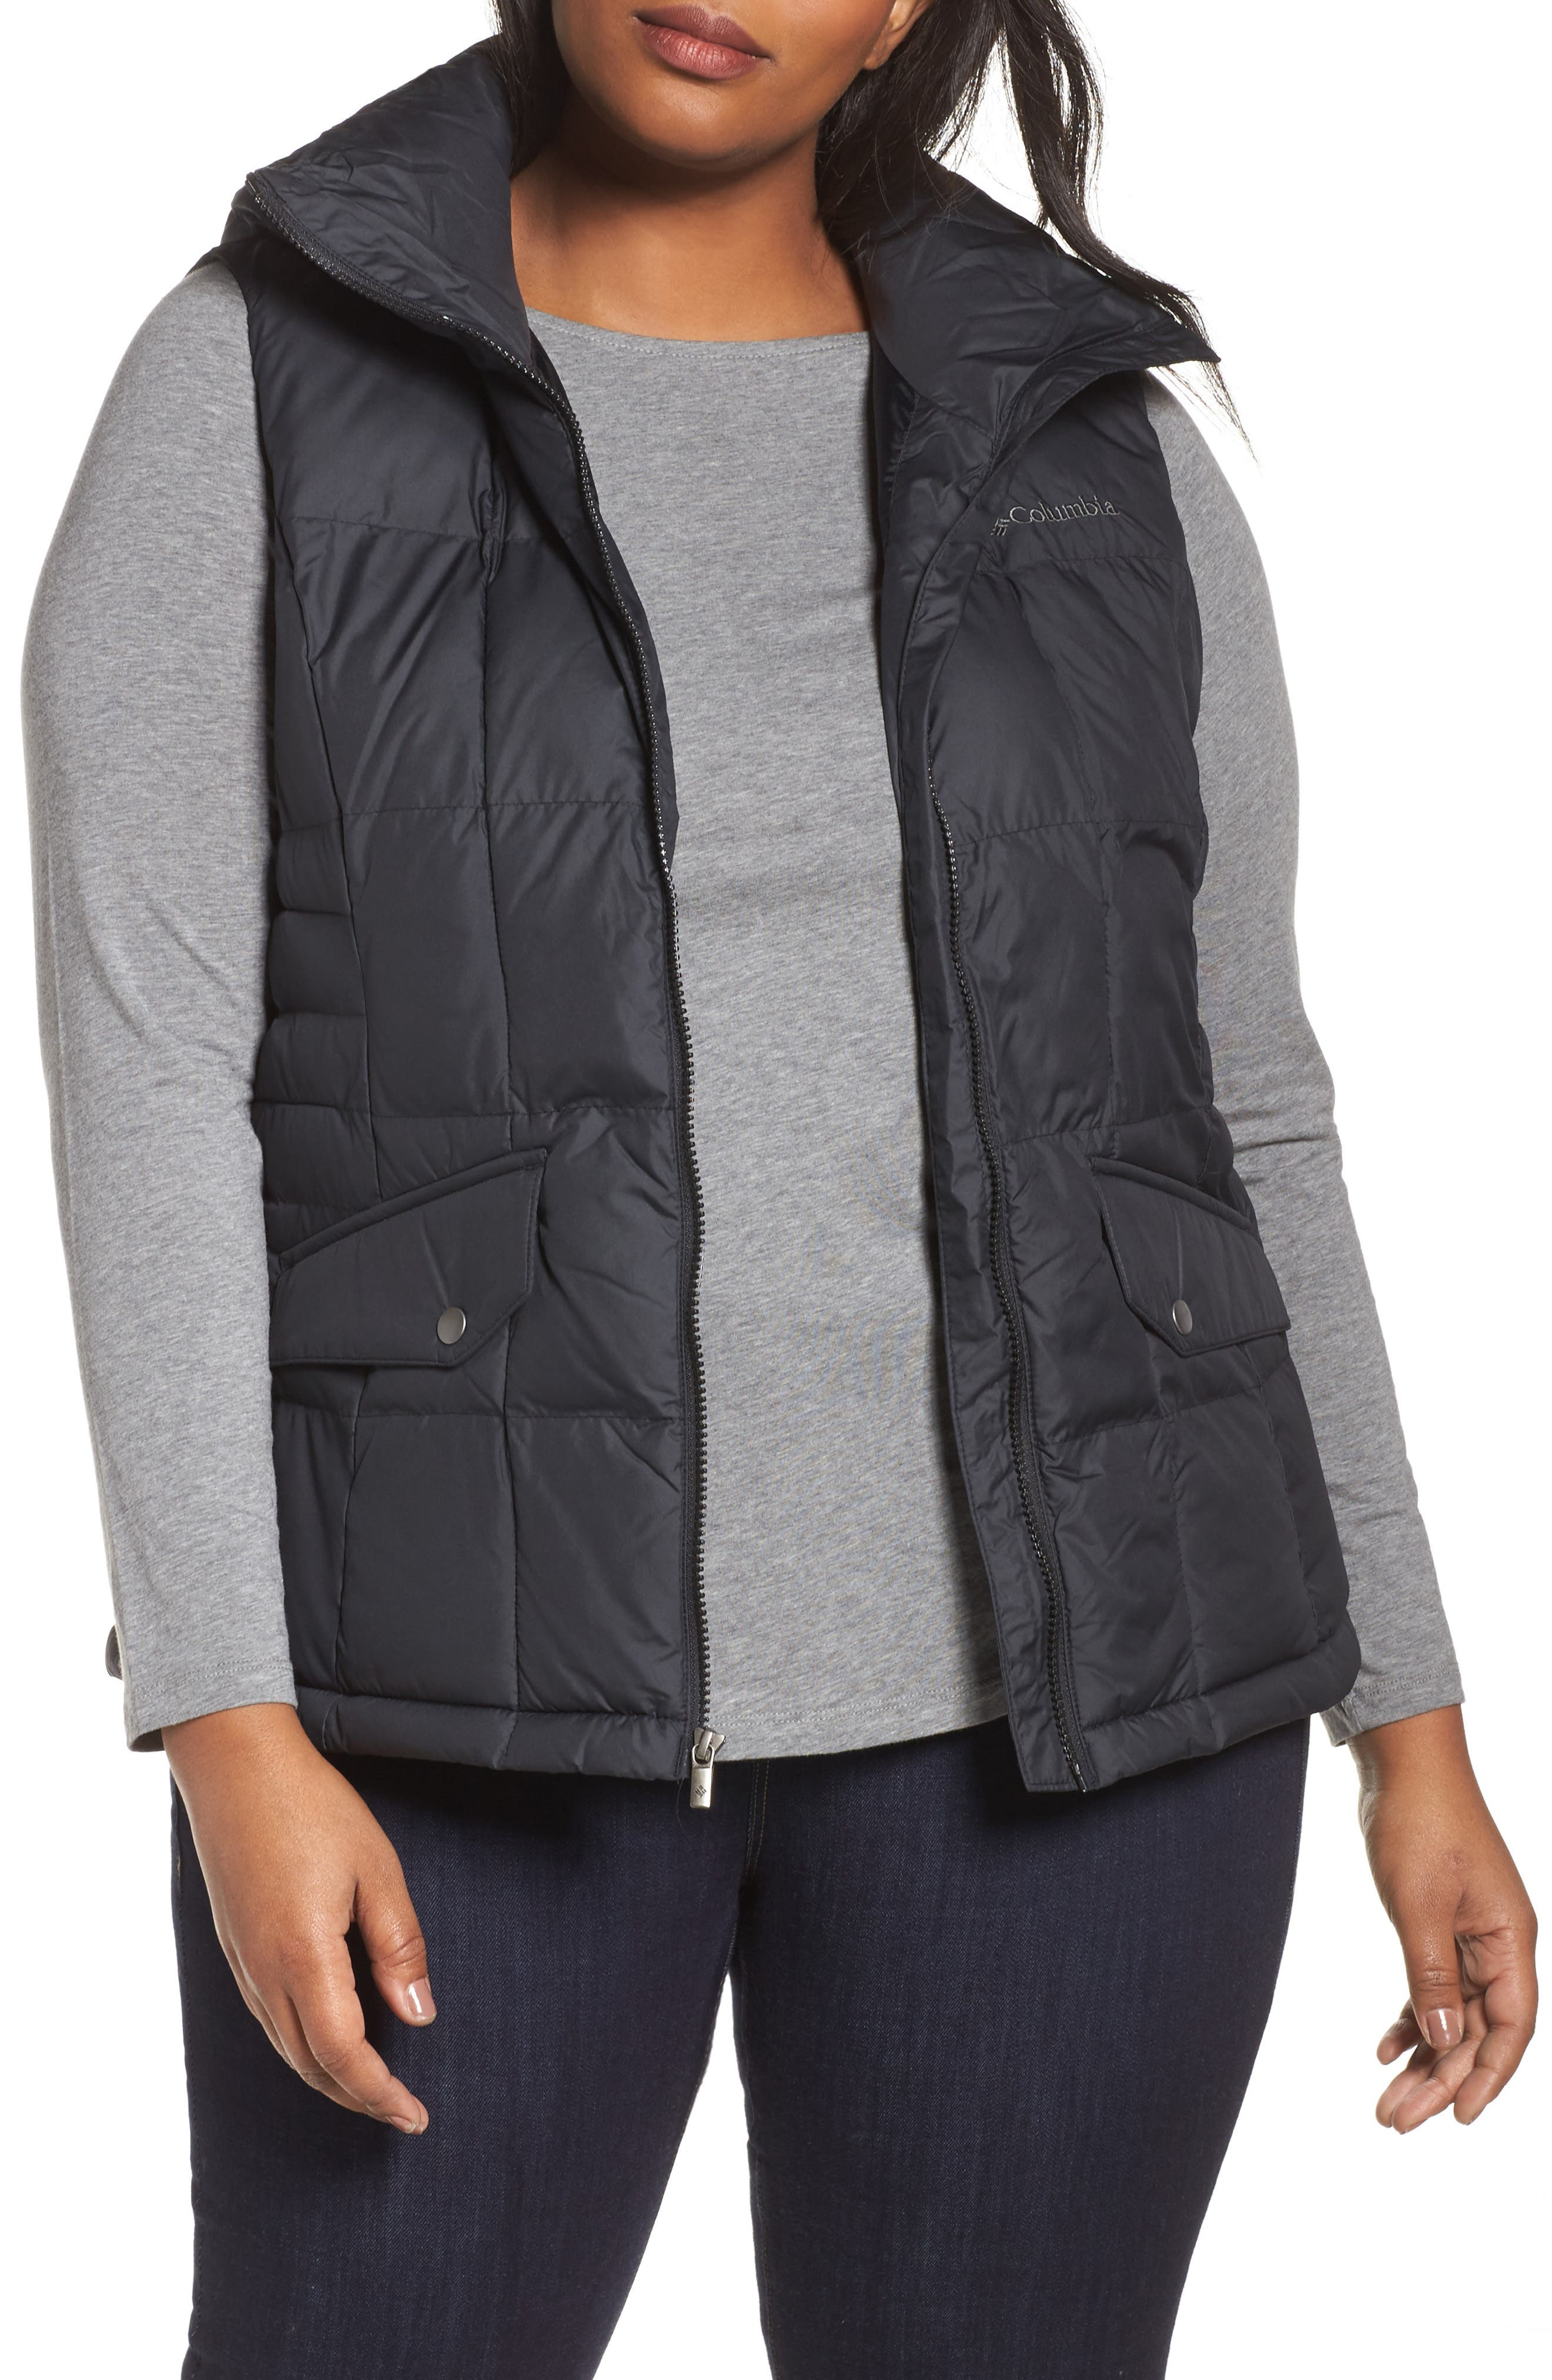 Alternate Image 1 Selected - Columbia Lone Creek Puffer Vest (Plus Size)